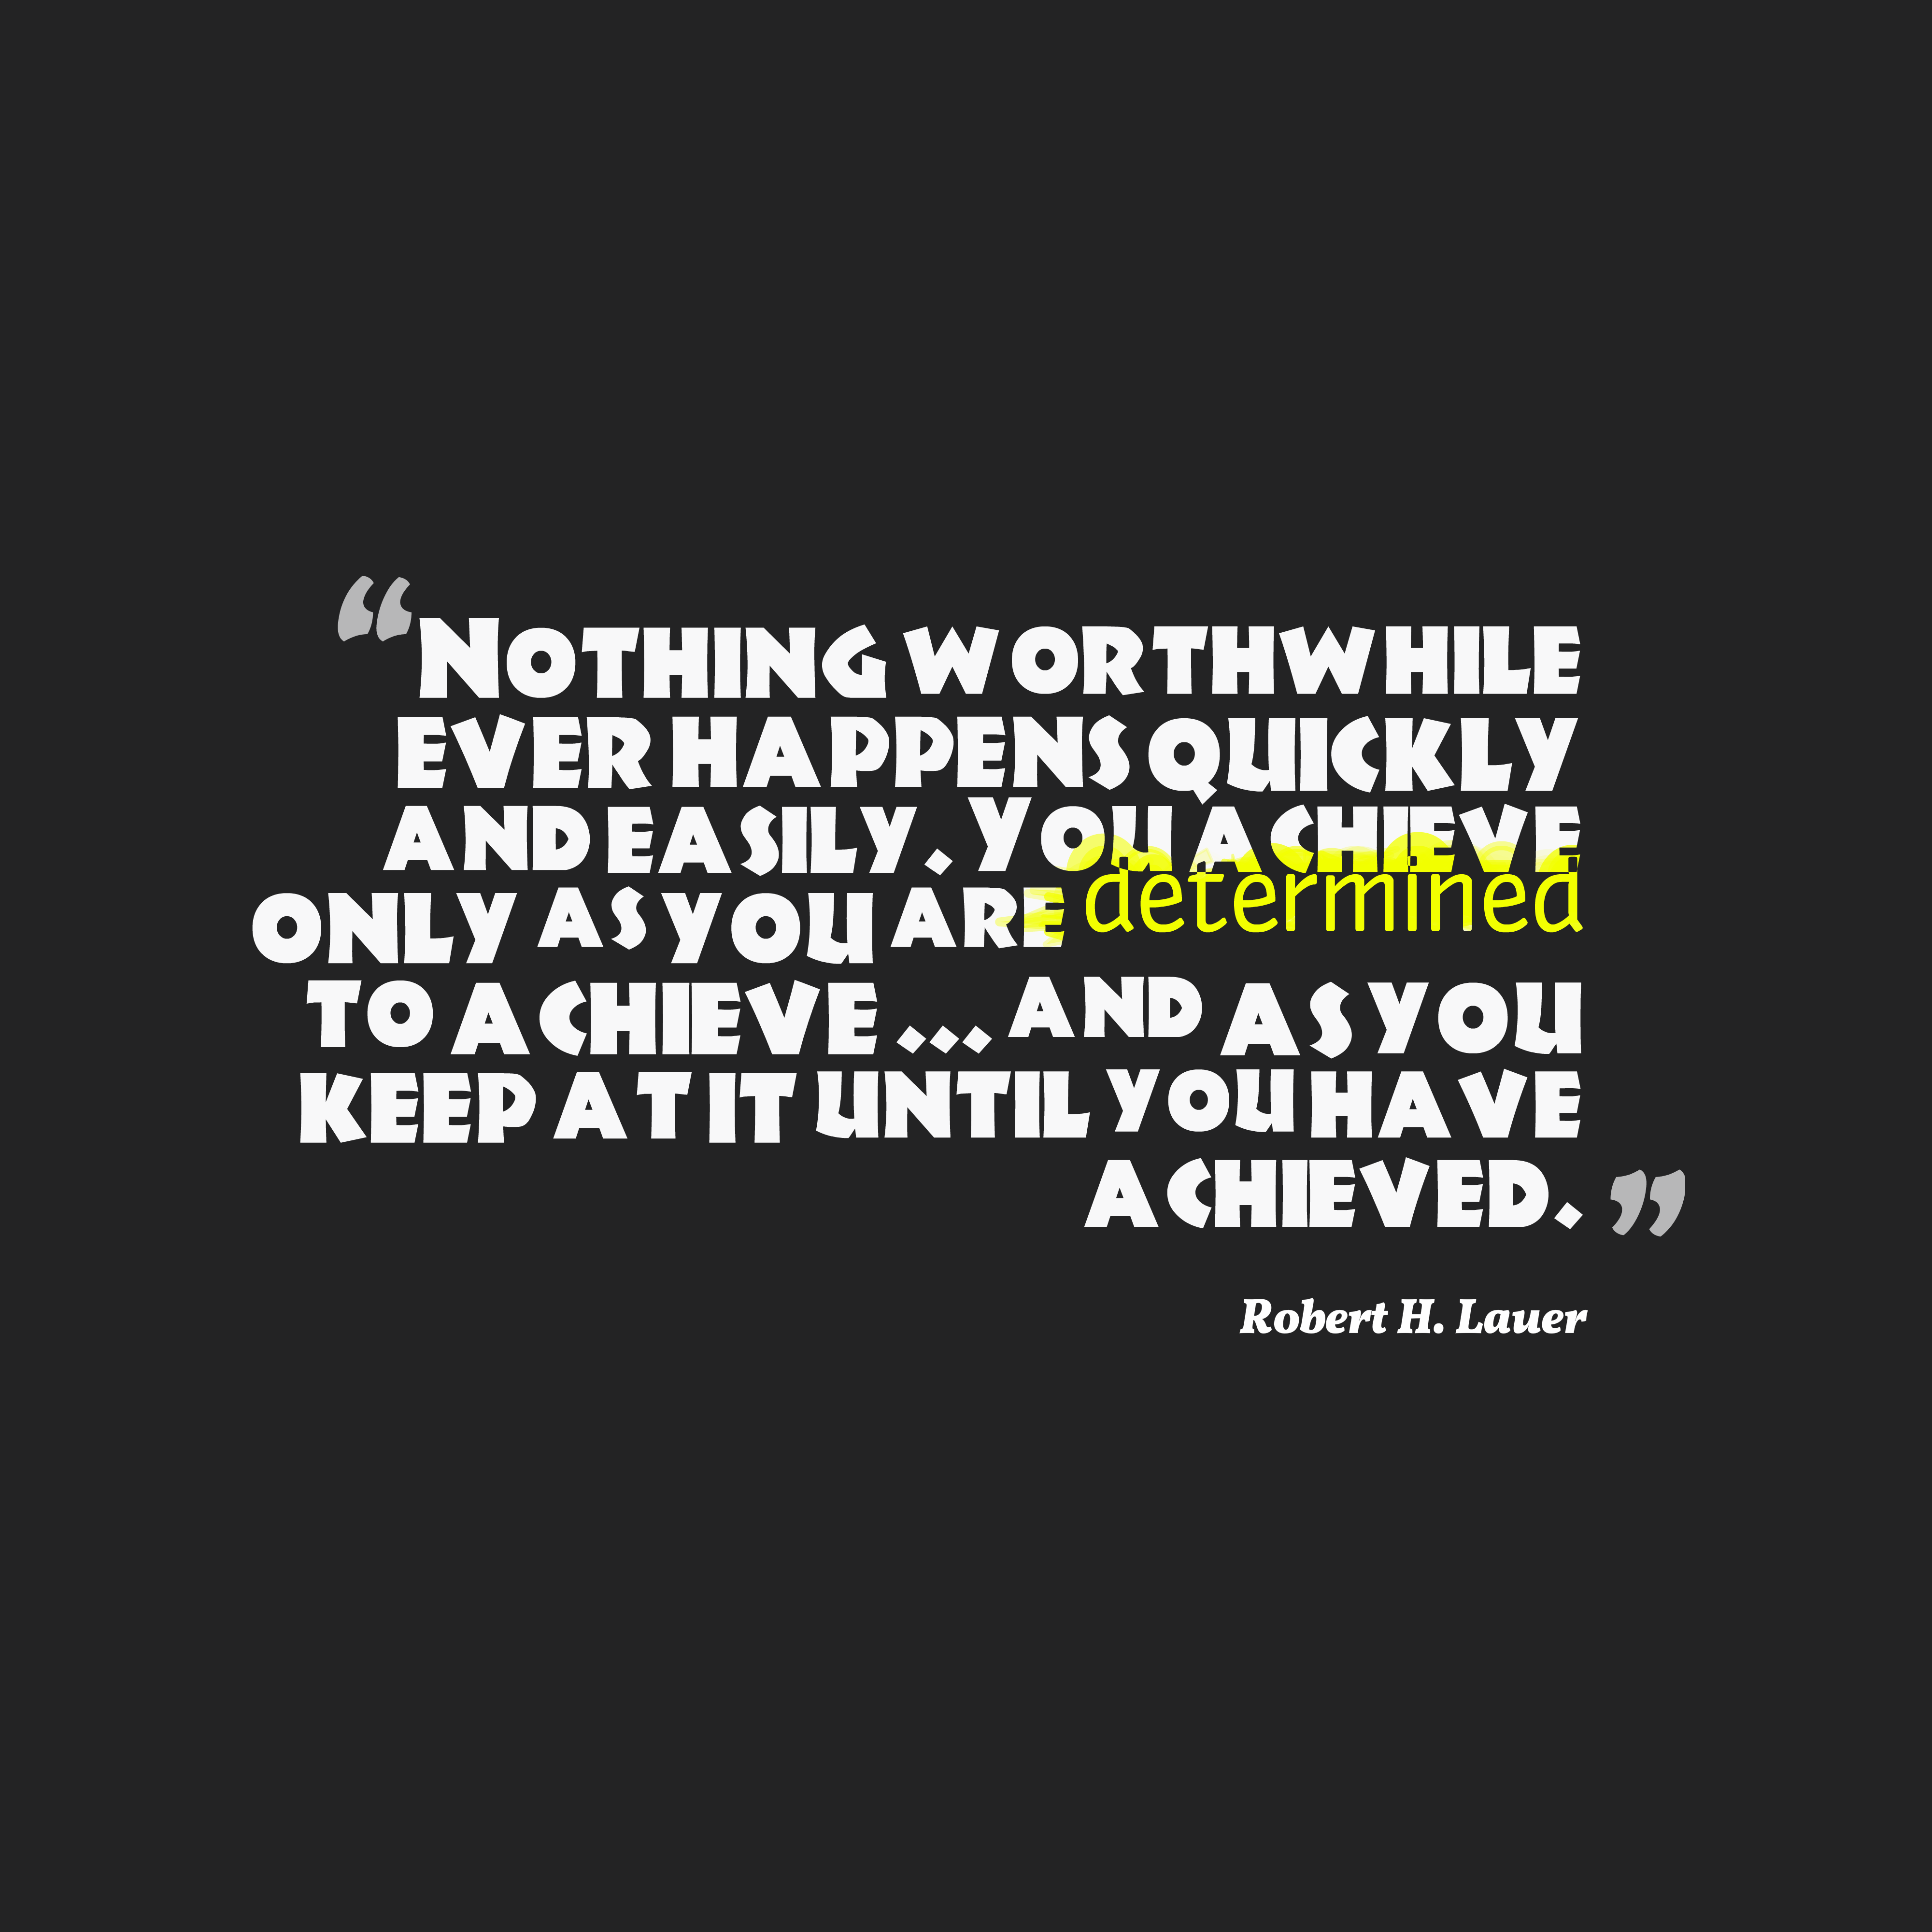 Quotes image of Nothing worthwhile ever happens quickly and easily. You achieve only as you are determined to achieve ... and as you keep at it until you have achieved.